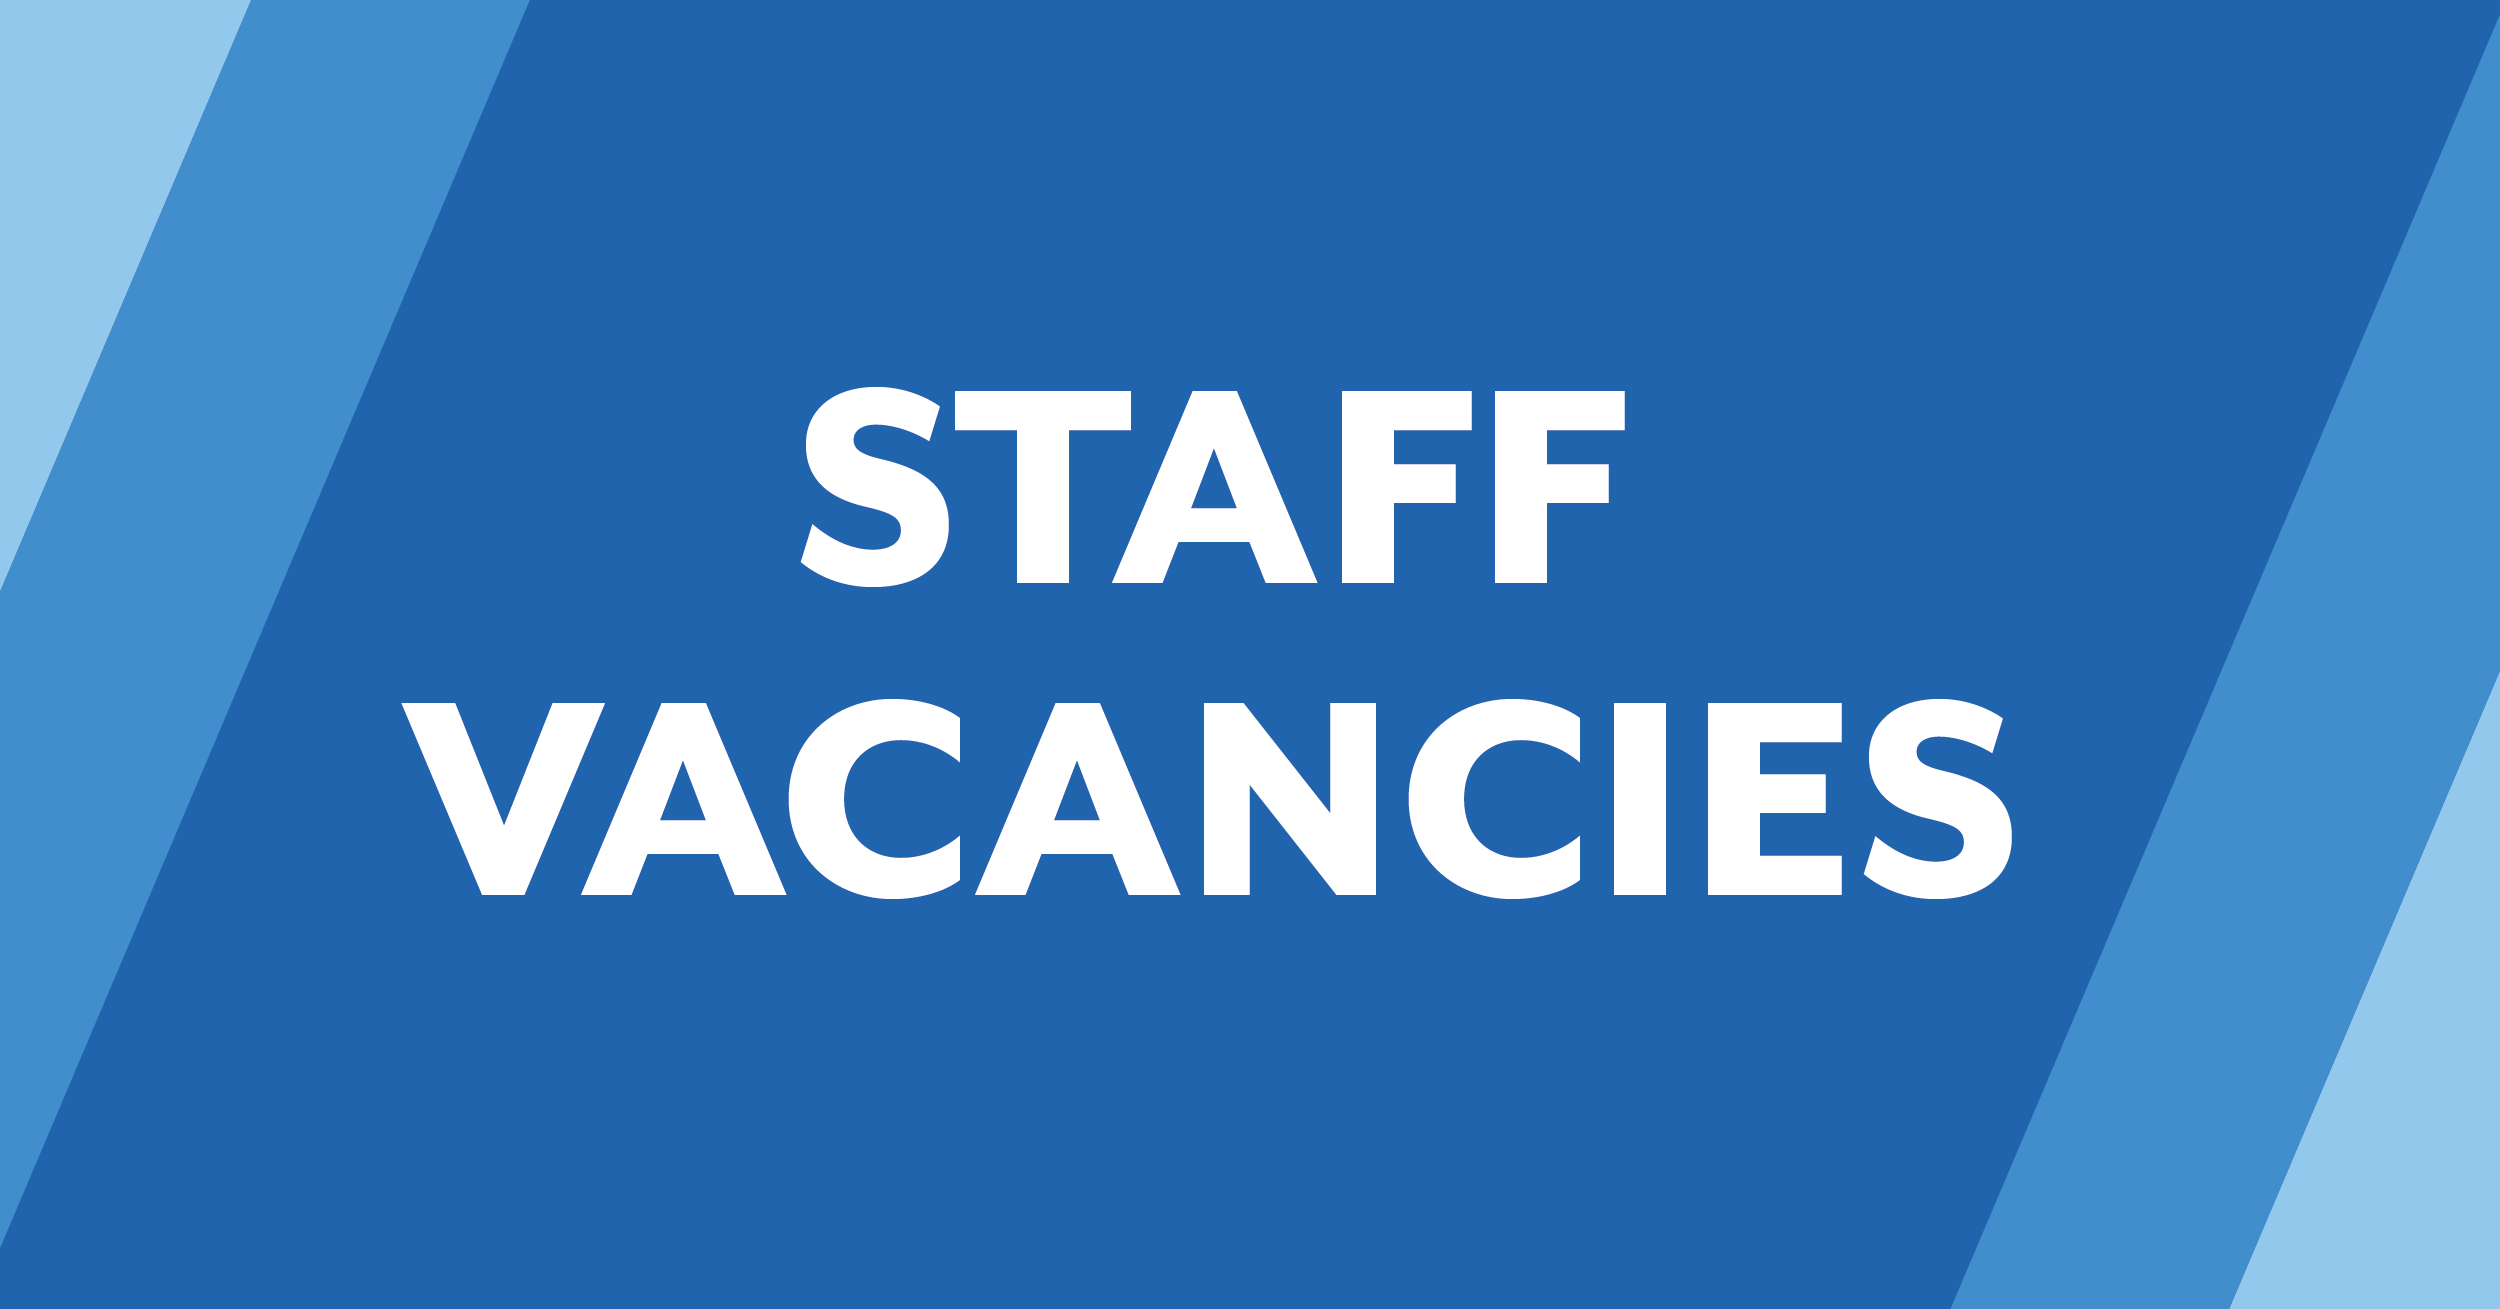 Find out about our staff vacancies